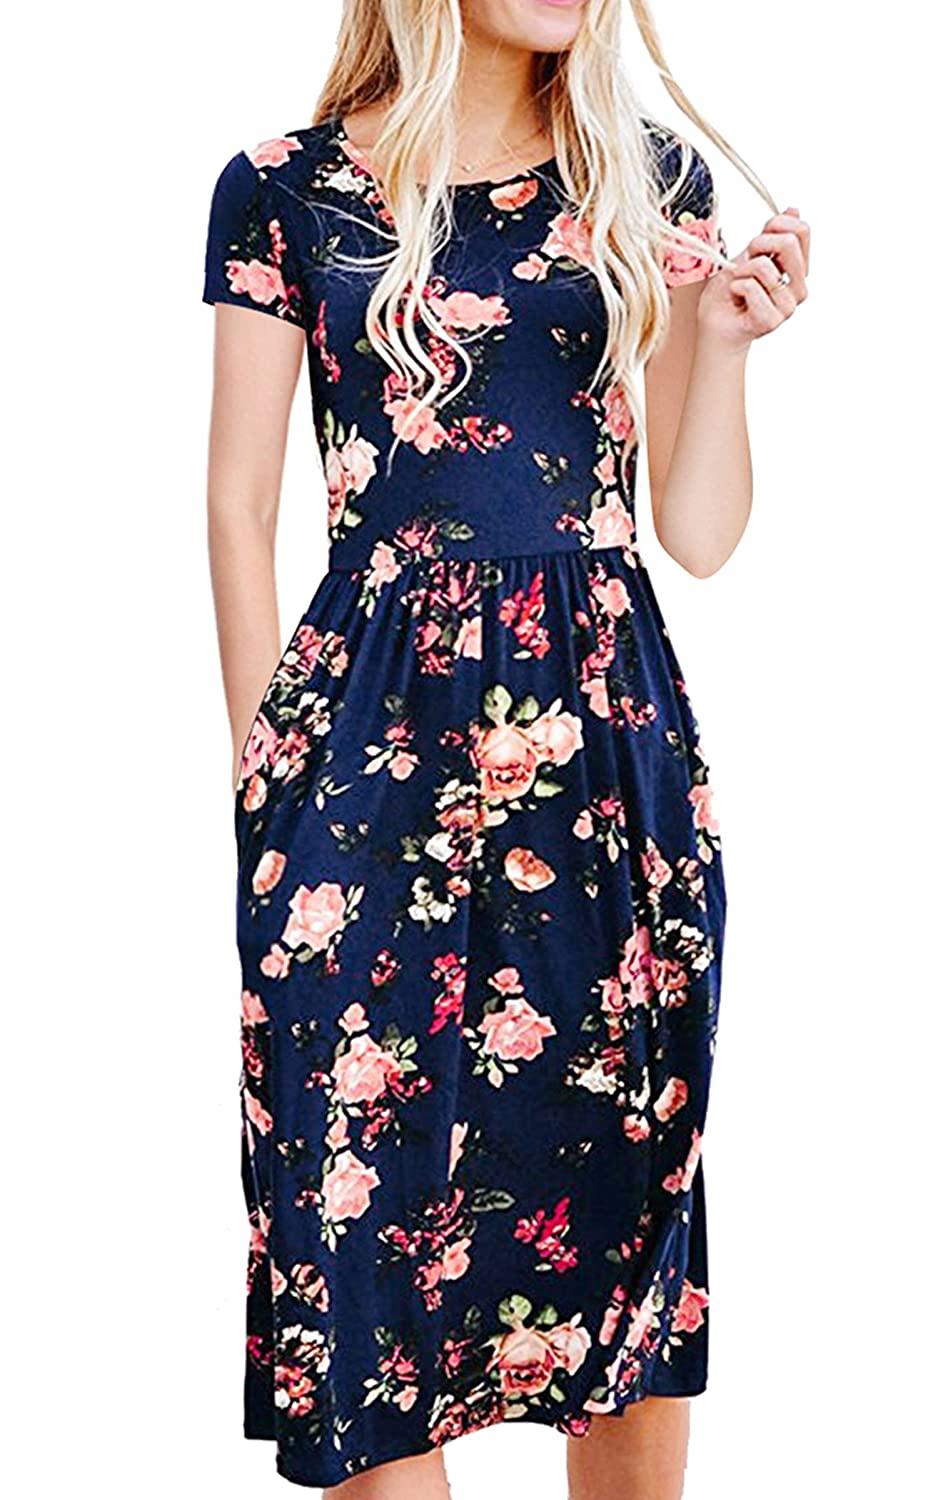 b944a1806043 ECOWISH Womens Dresses Summer Floral Short Sleeve Elastic Waist Vintage  Retro Midi Dress with Pockets at Amazon Women's Clothing store: